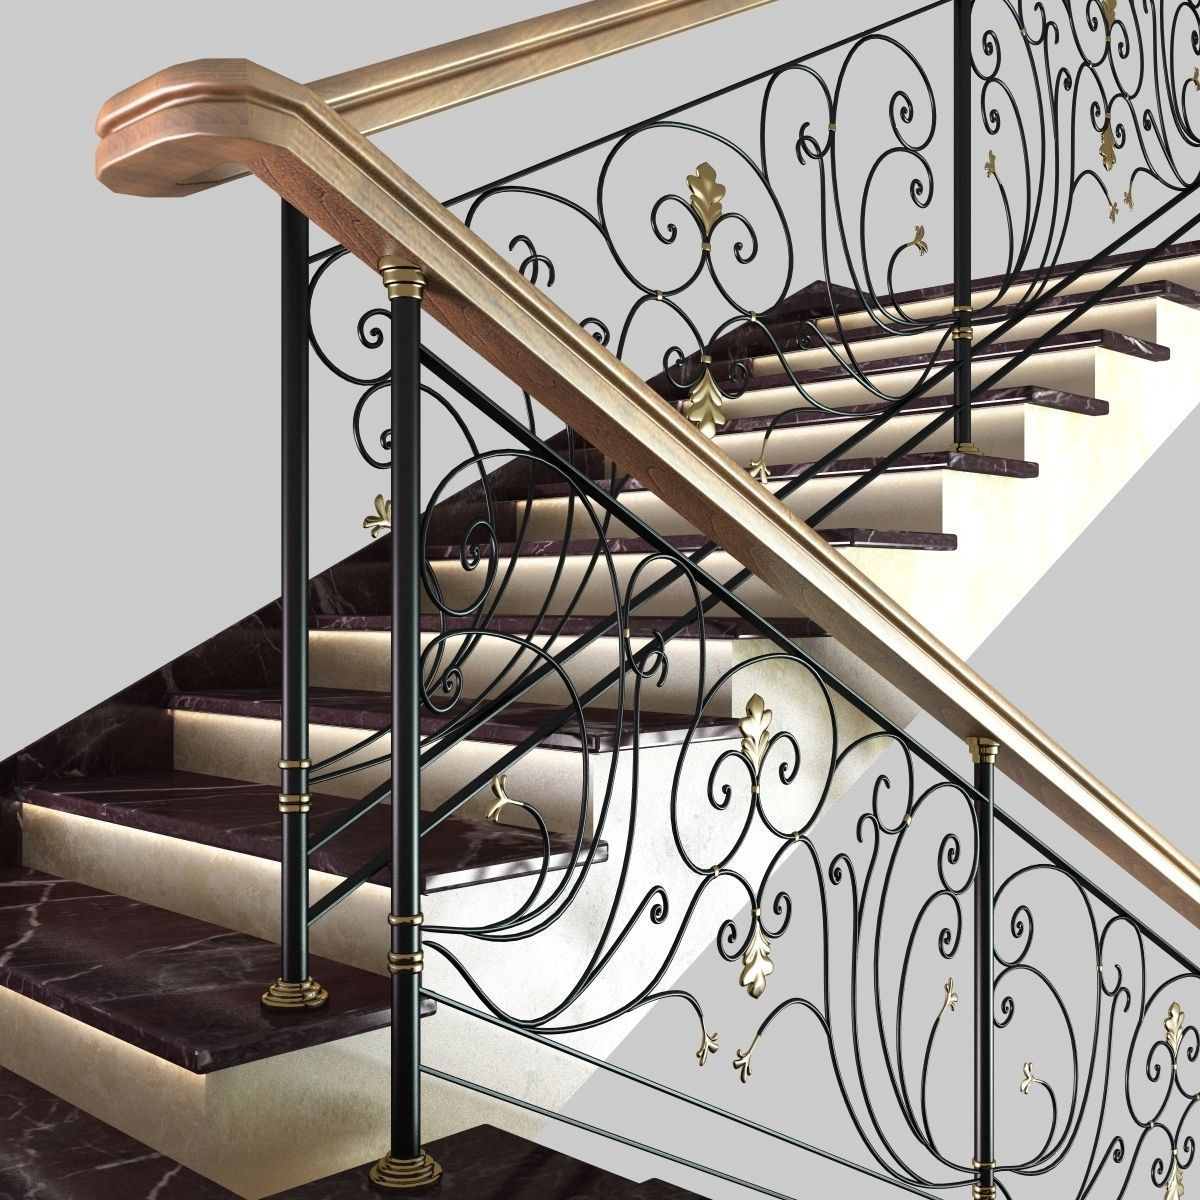 ... Classic Marble Stairs 3d Model Max Obj Mtl 3ds Fbx Unitypackage Prefab 8